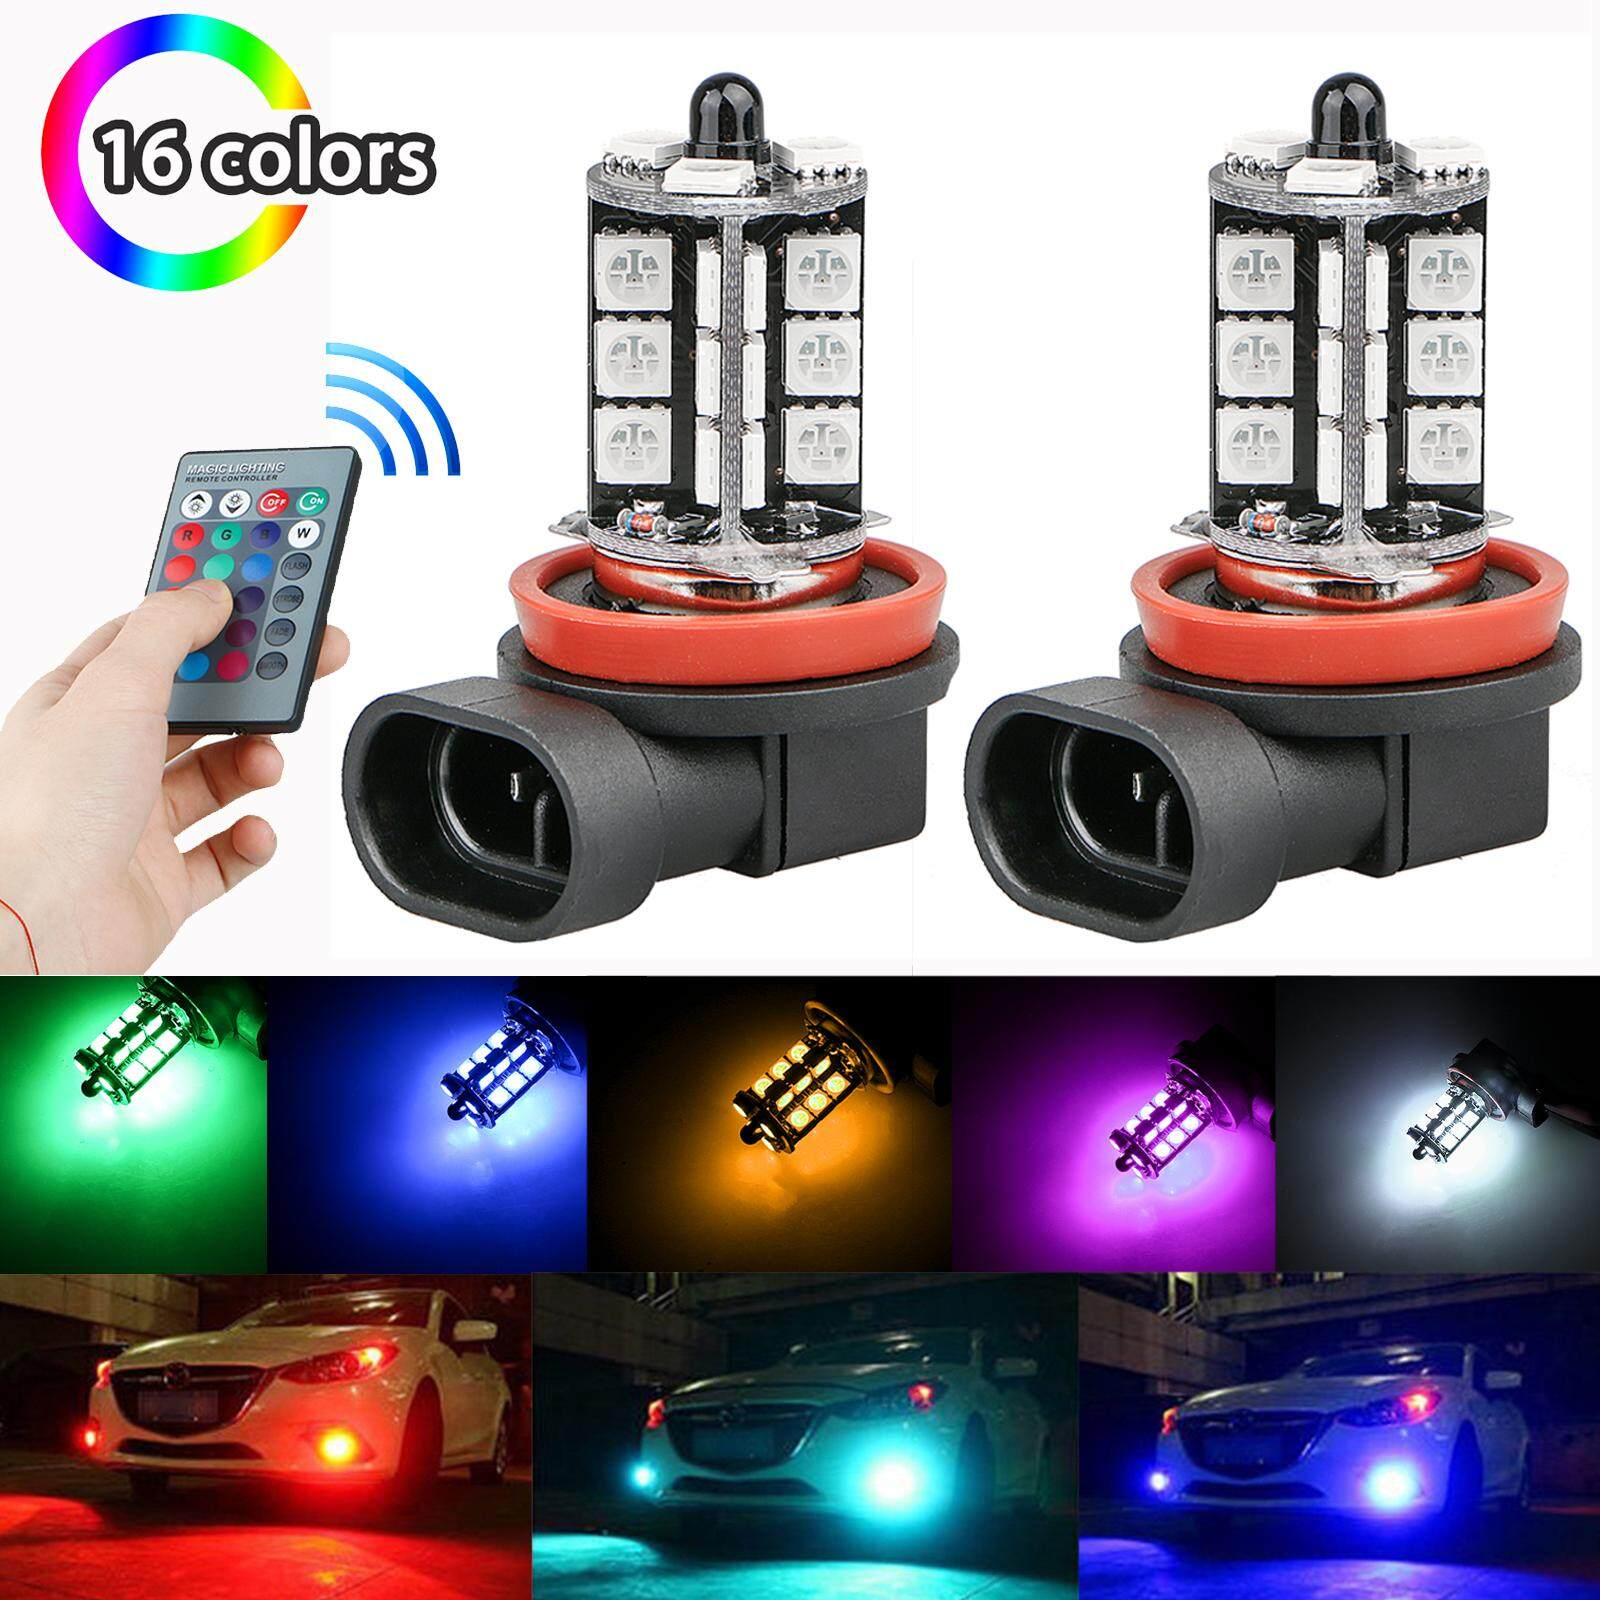 Automotive Accessories 5 Buy At Best Light Laser Led Gt Circuits Traffic Lights For Games With 2pcs 12v 27smd 5050 Multi Color Rgb Fog Driving Bulbs Remote H8